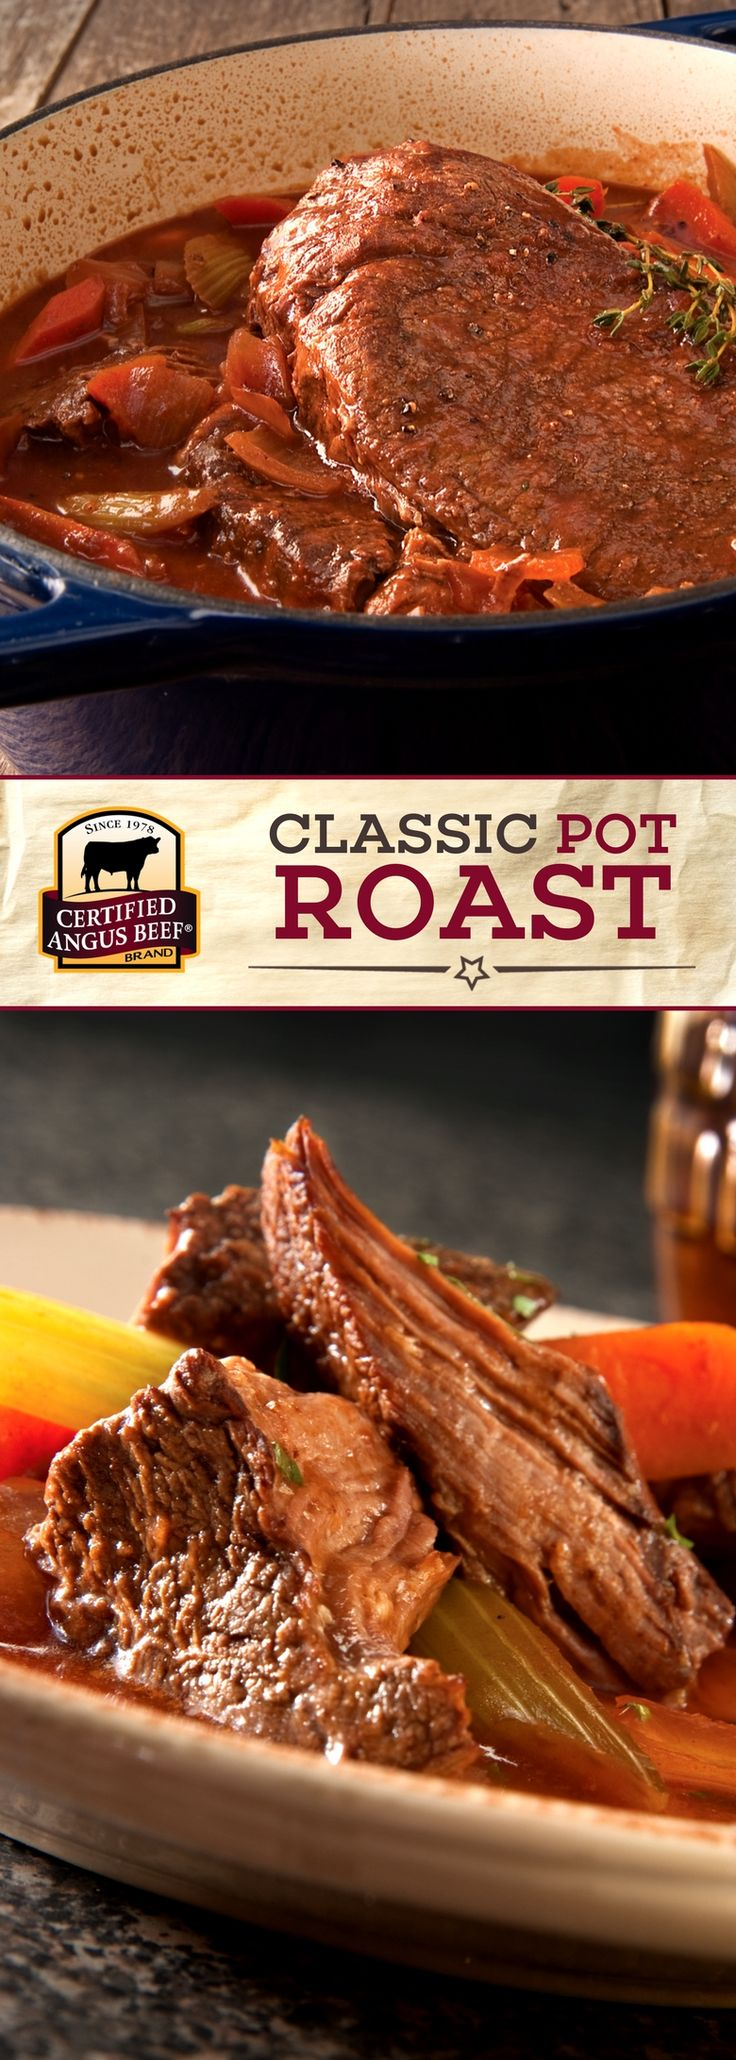 Certified Angus Beef®️️️️️️️️️️️️️️️ brand Classic POT ROAST is slow cooked in the oven or slow cooker with vegetables and an IRRESISTIBLE red wine sauce. Slow cooking on low heat ensures maximum flavor and tenderness every time! This classic COMFORT FOOD recipe is a FAMILY FAVORITE! Use our FREE Roast Perfect App for successful roasting EVERY TIME! #bestangusbeef #certifiedangusbeef #beefrecipe #budgetfriendly #easyrecipe #potroast #comfortfood #slowcooker